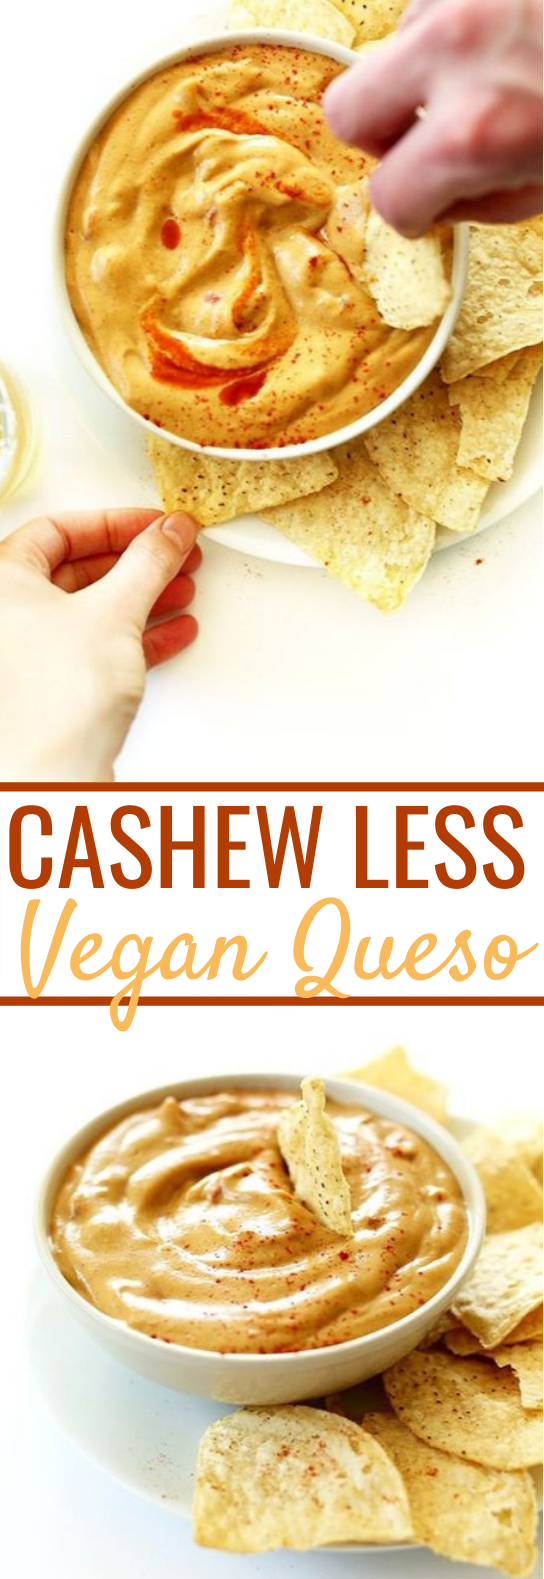 Cashew-less Vegan Queso #sauce #vegetarian #vegan #glutenfree #healthy